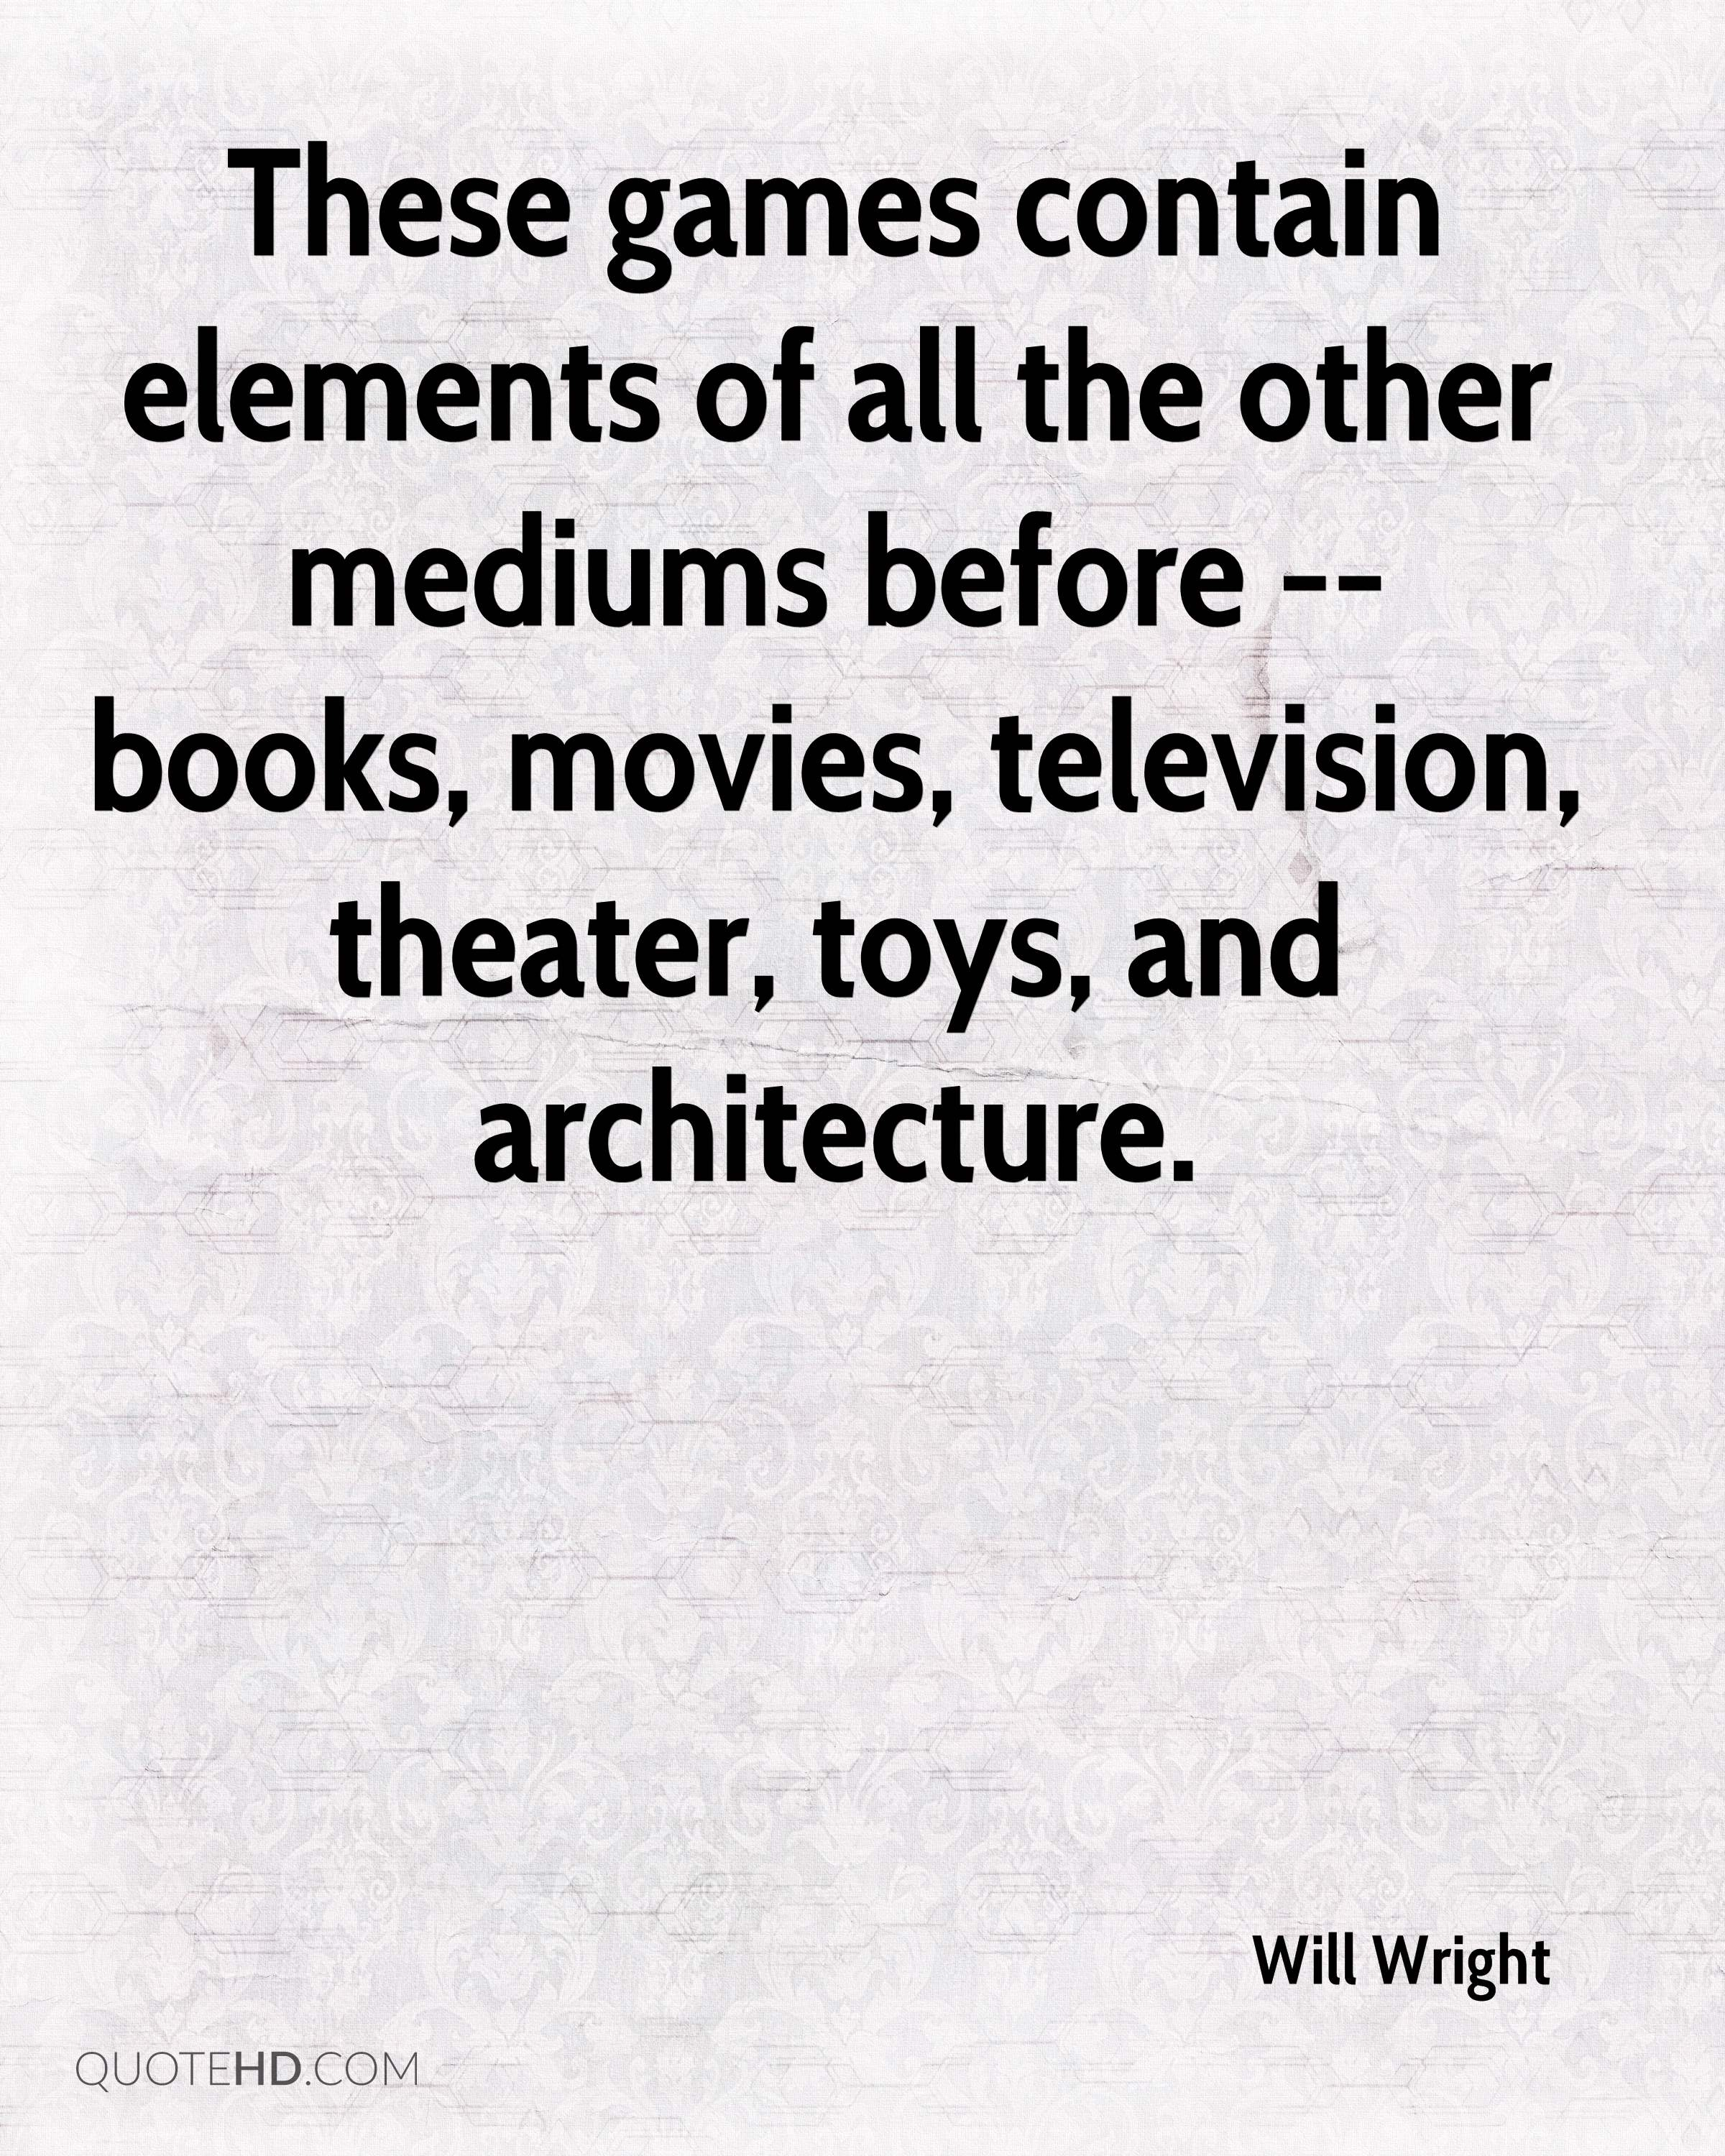 These games contain elements of all the other mediums before -- books, movies, television, theater, toys, and architecture.